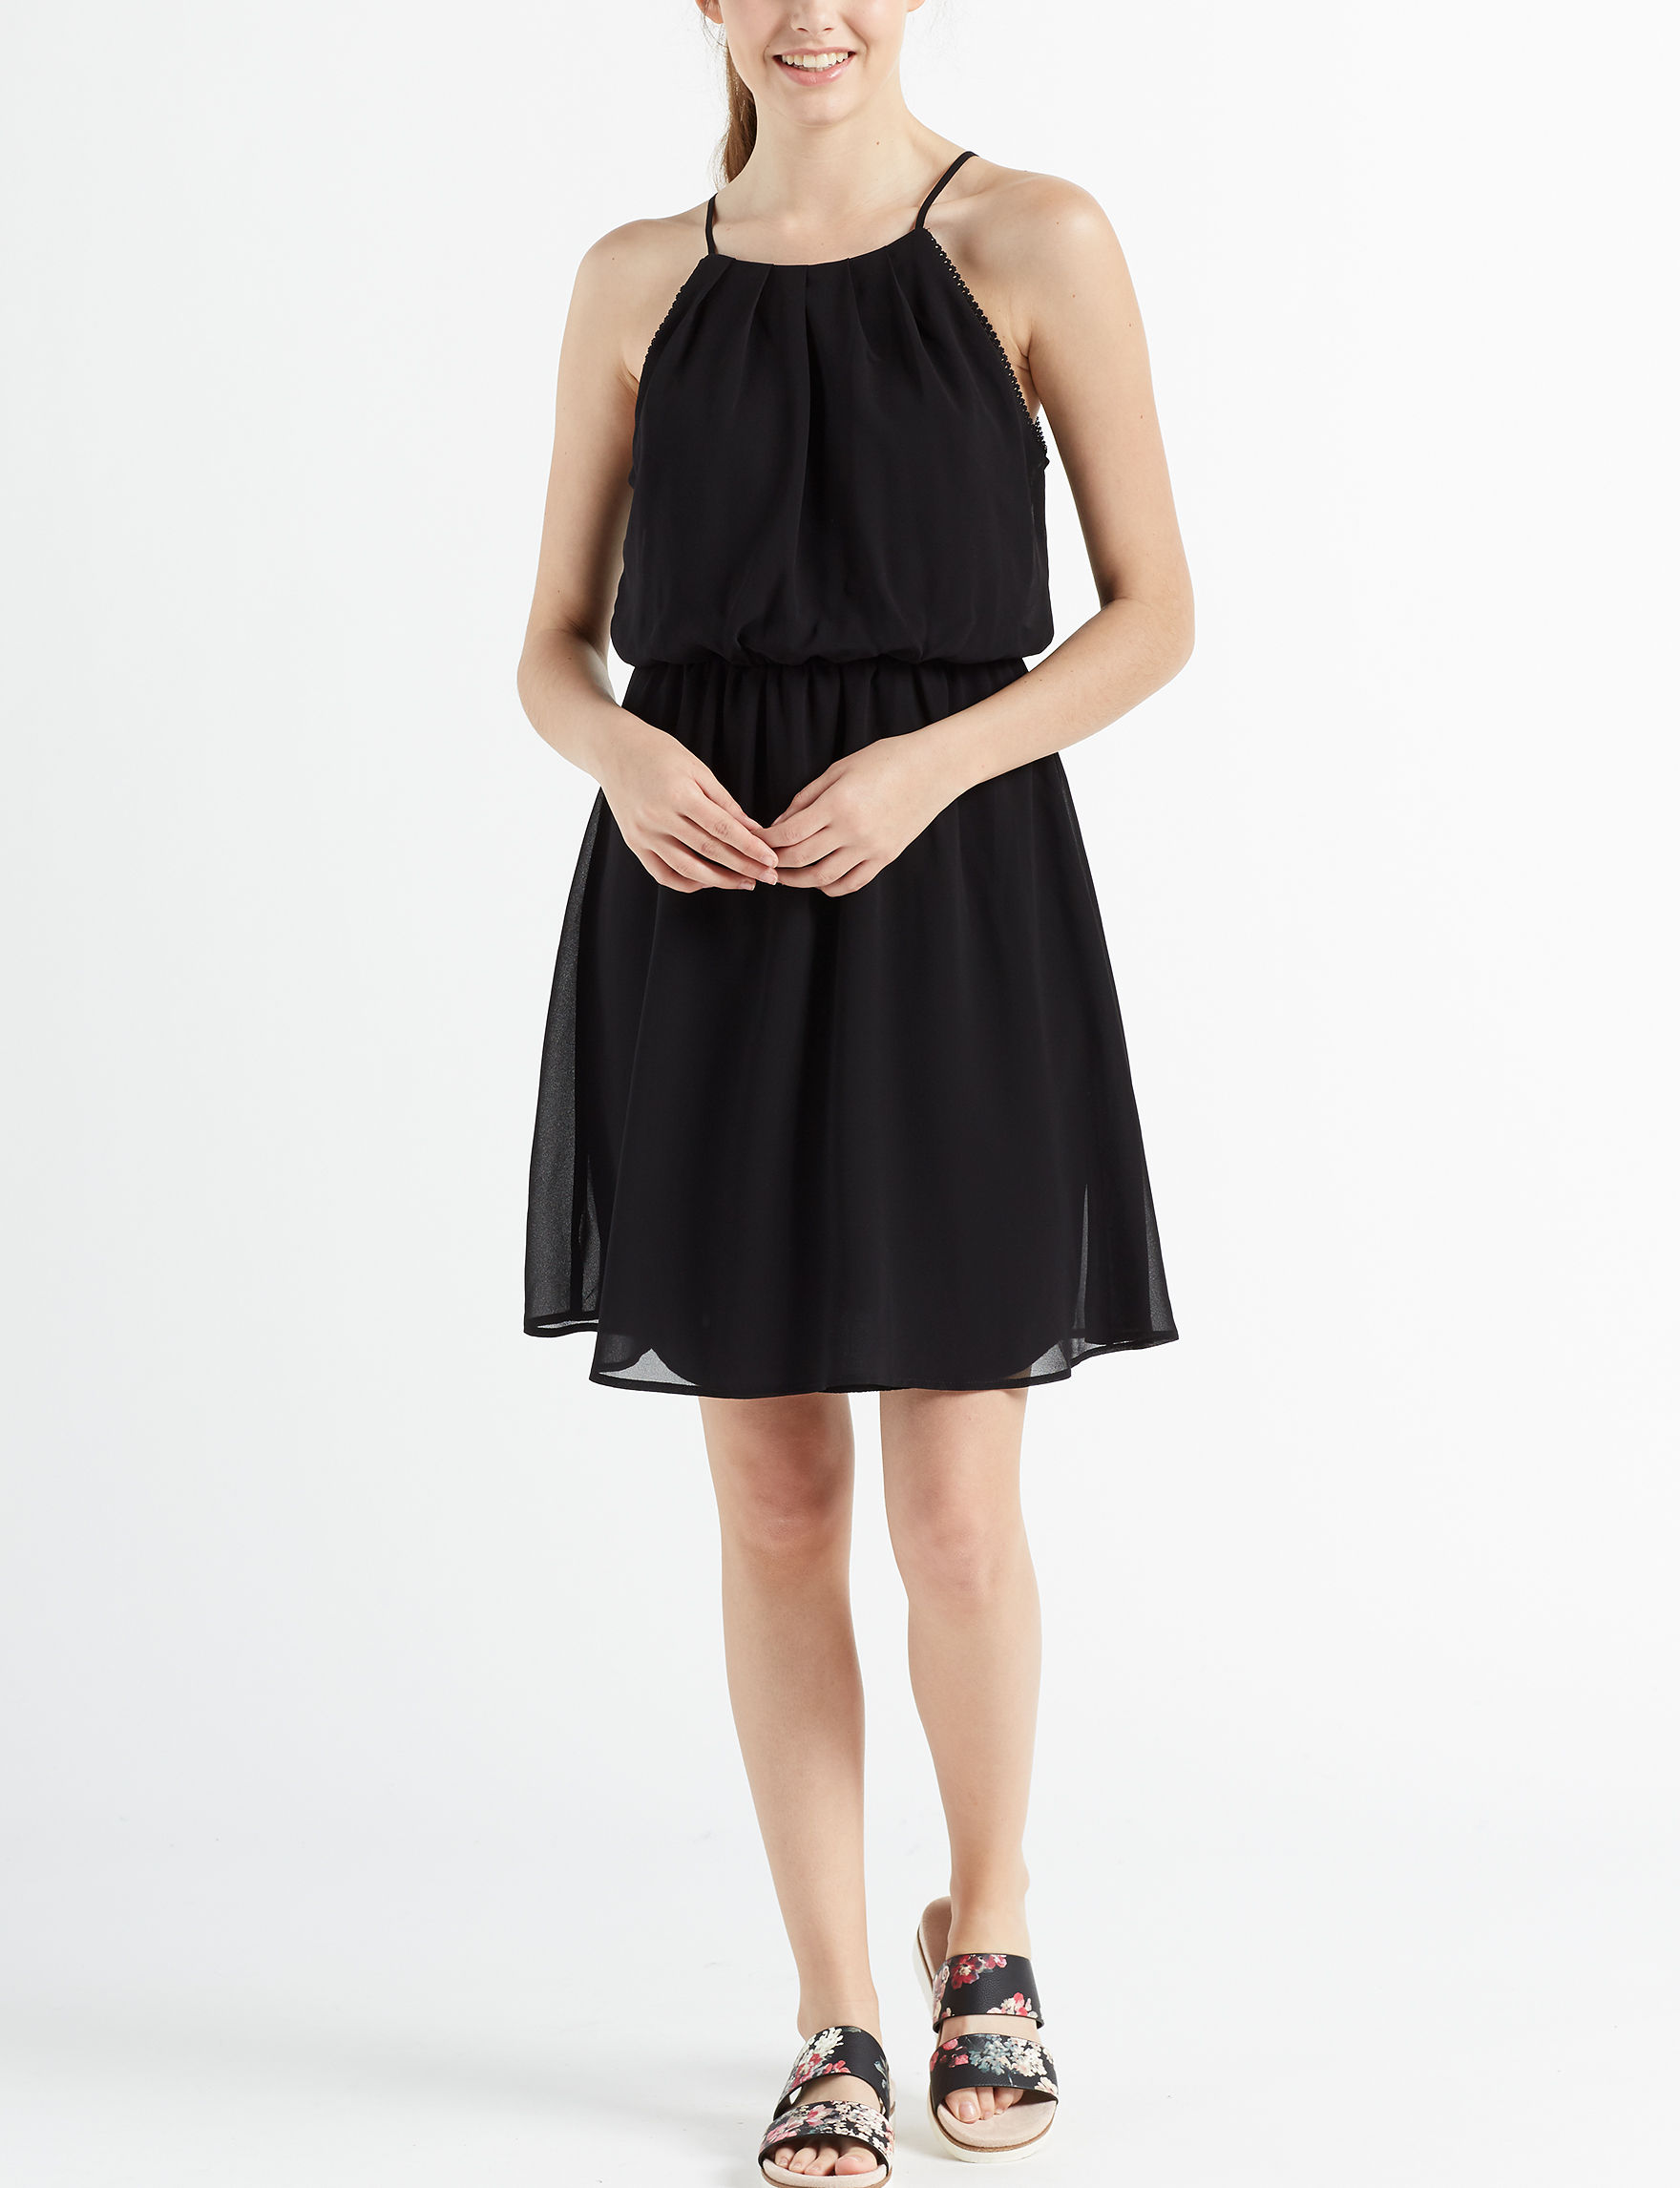 Wishful Park Black Everyday & Casual Fit & Flare Dresses